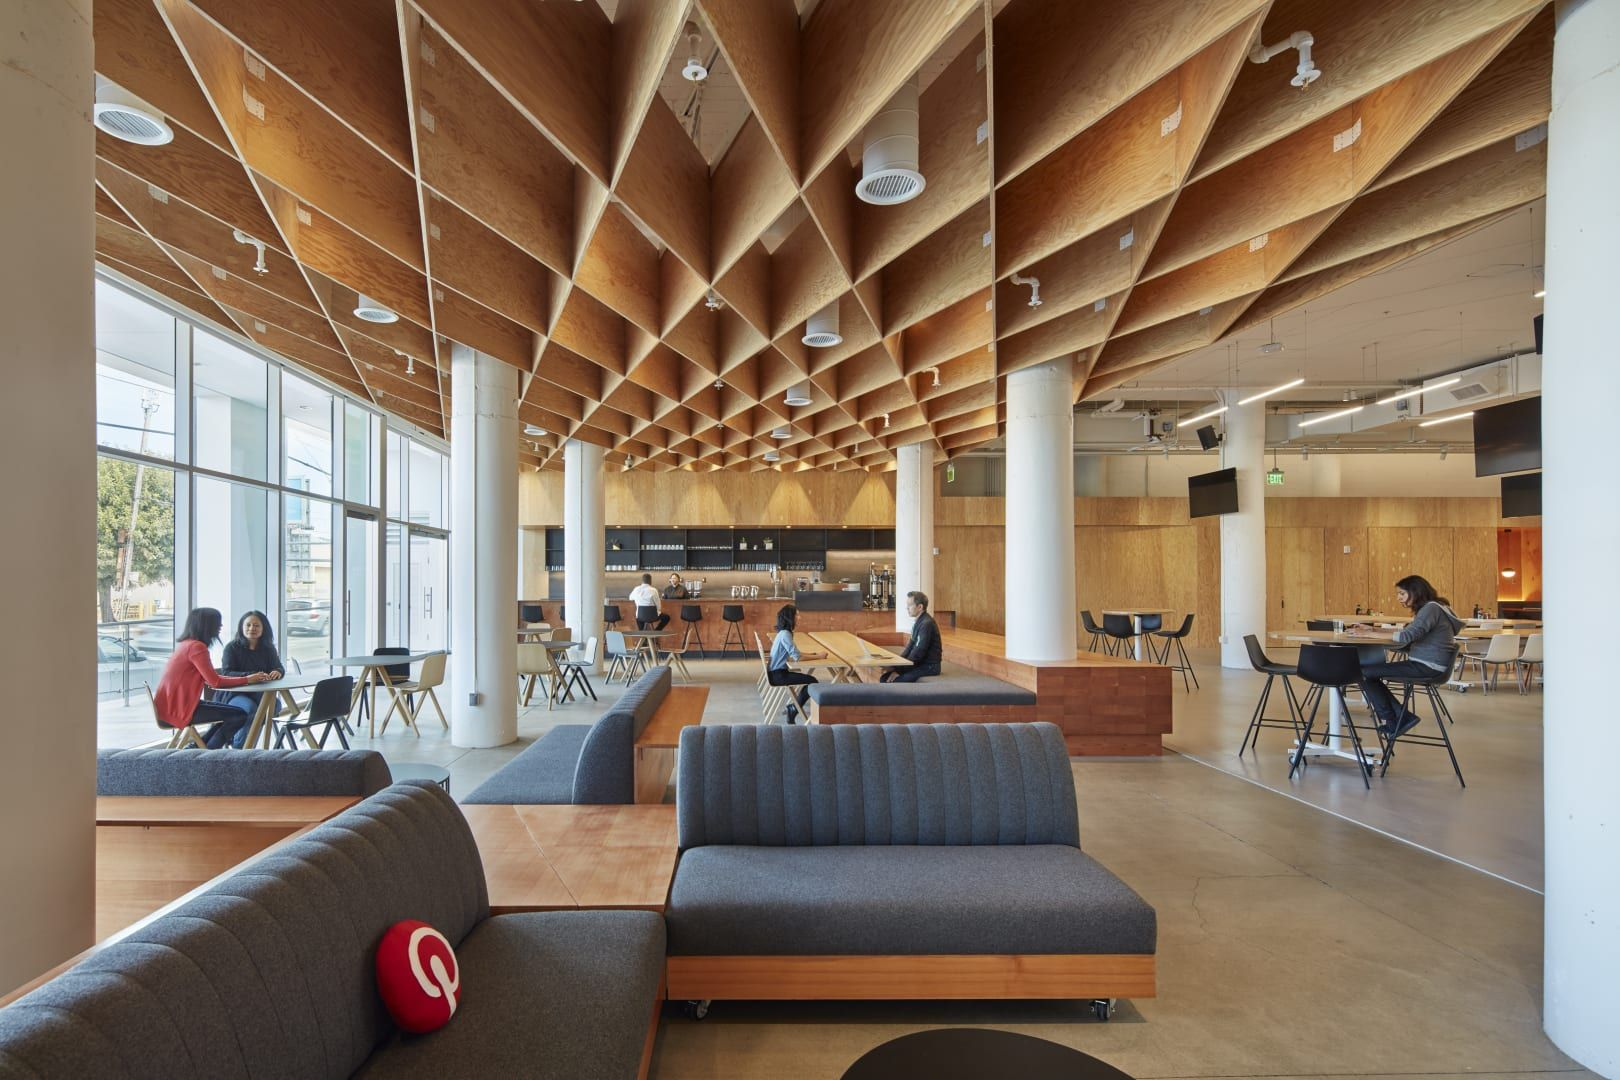 Pinterest headquarters architecture awards interior architecture interior design shade structure office